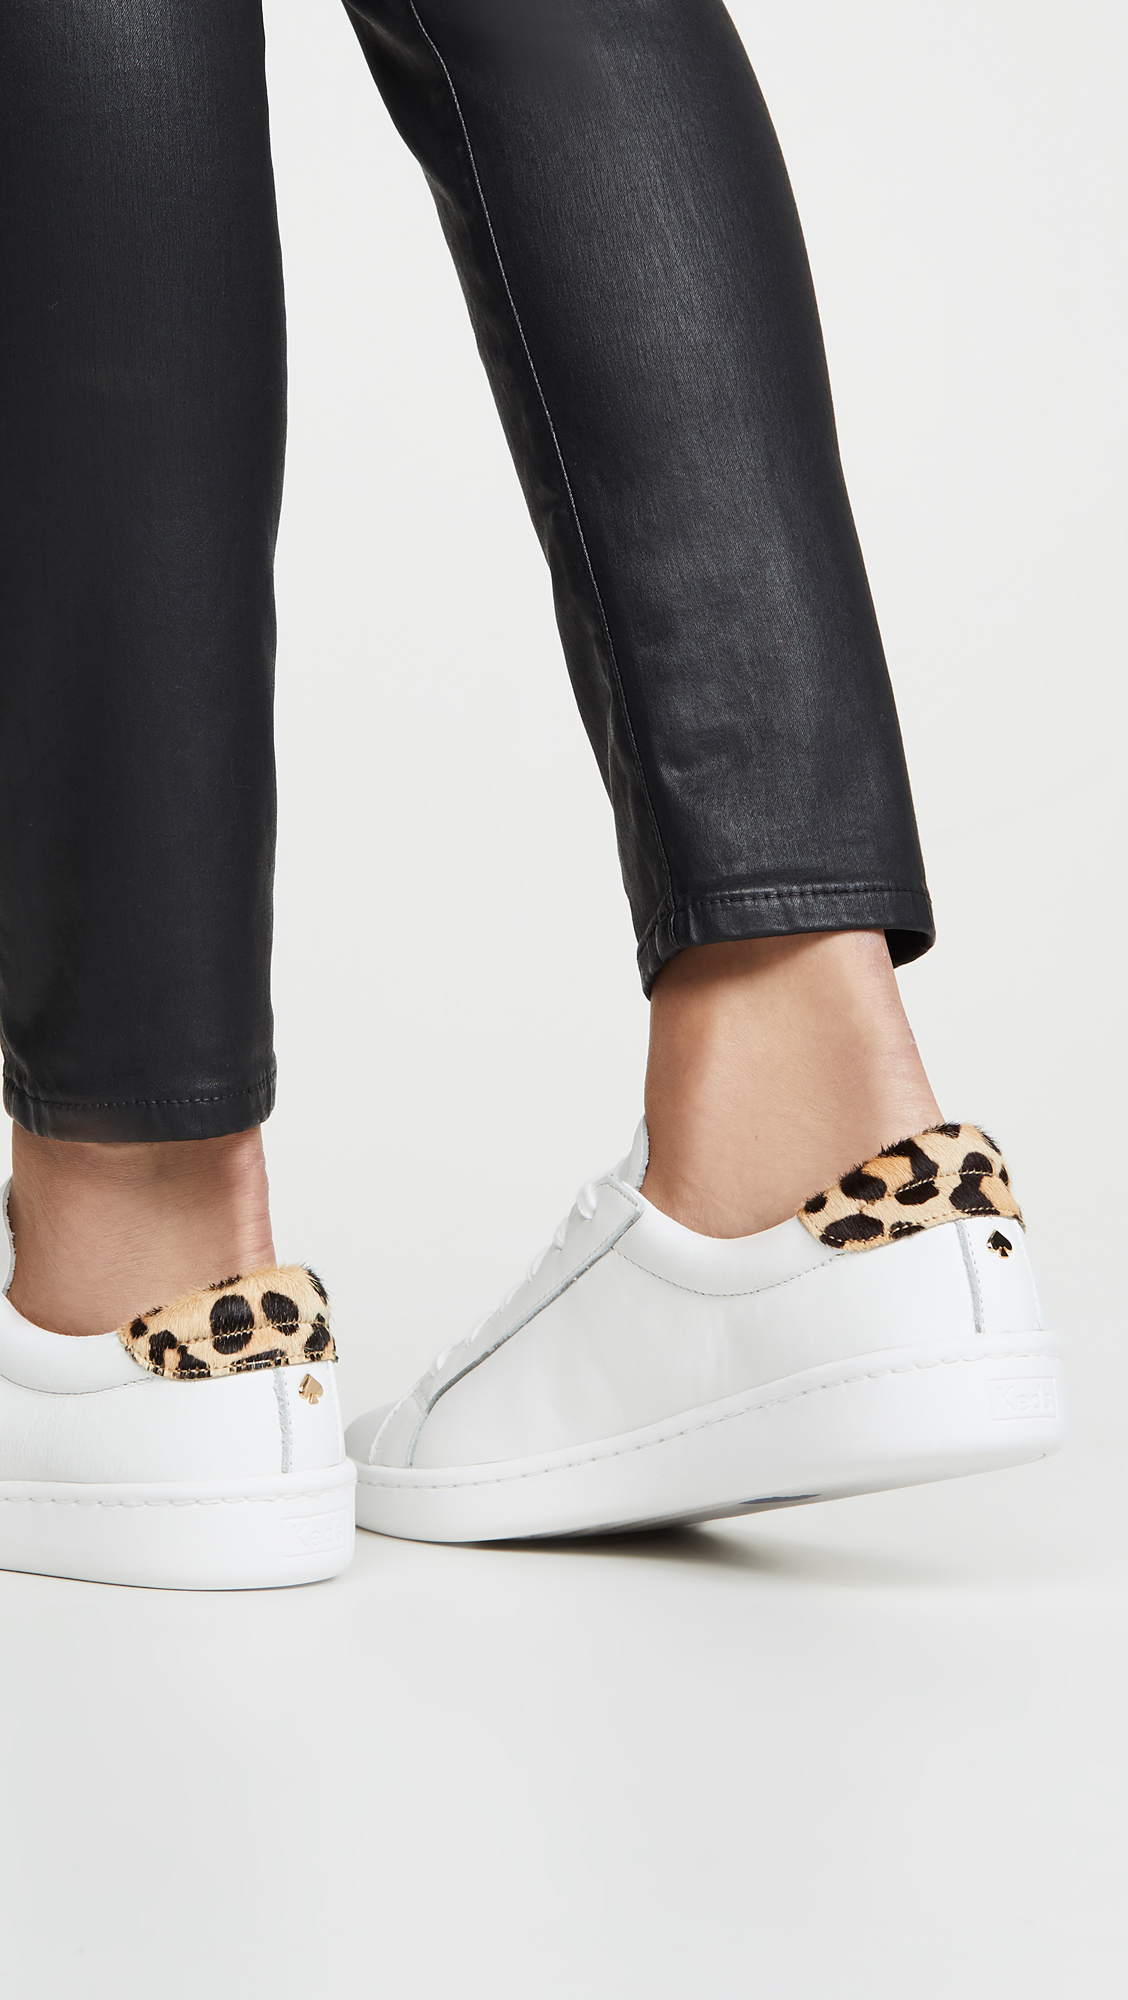 Leopard Kate Spade for Keds Sneakers